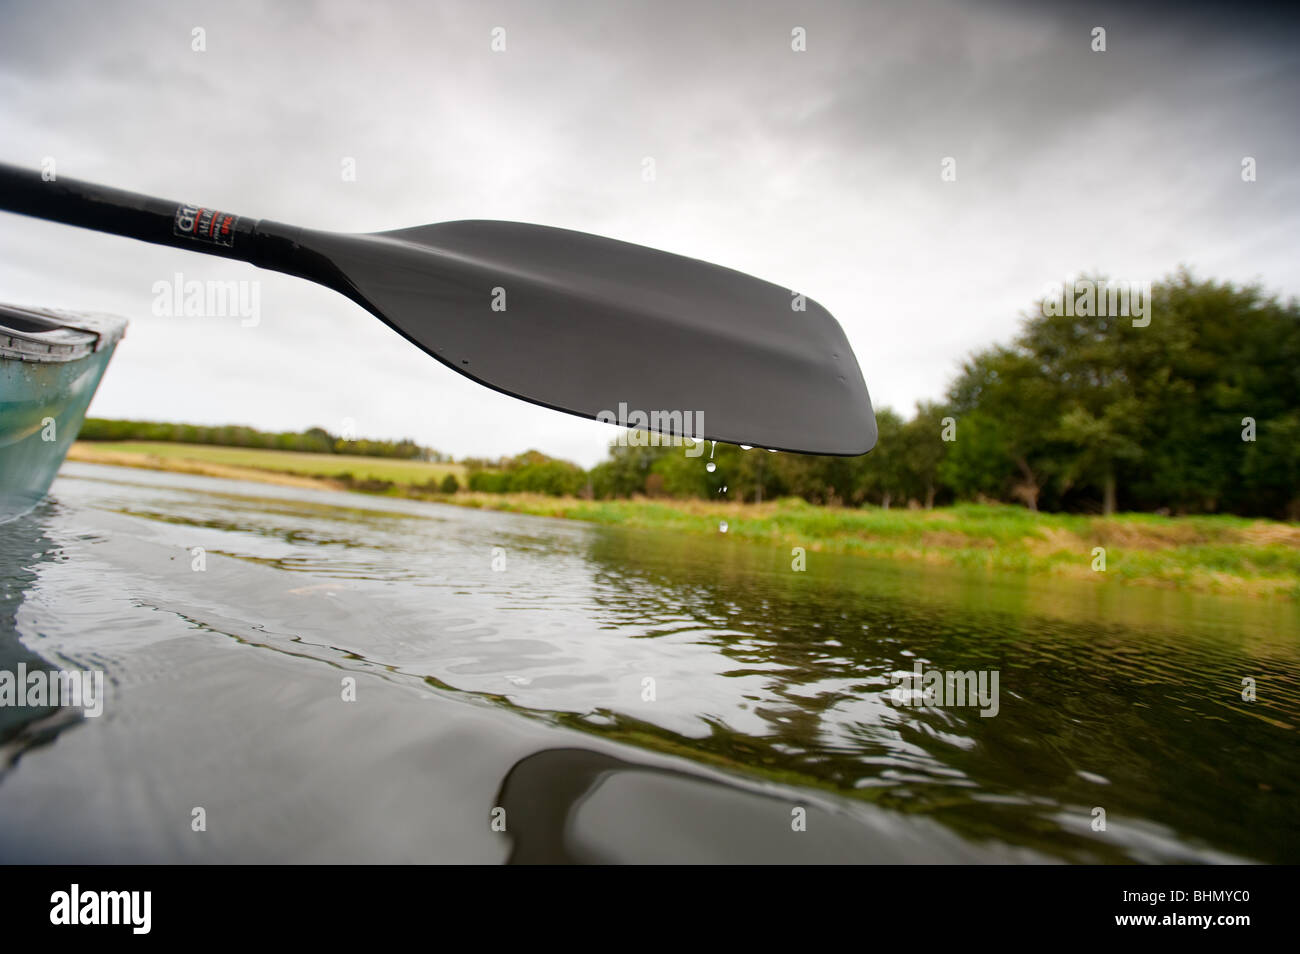 image of water droplets falling off canoe oar - Stock Image